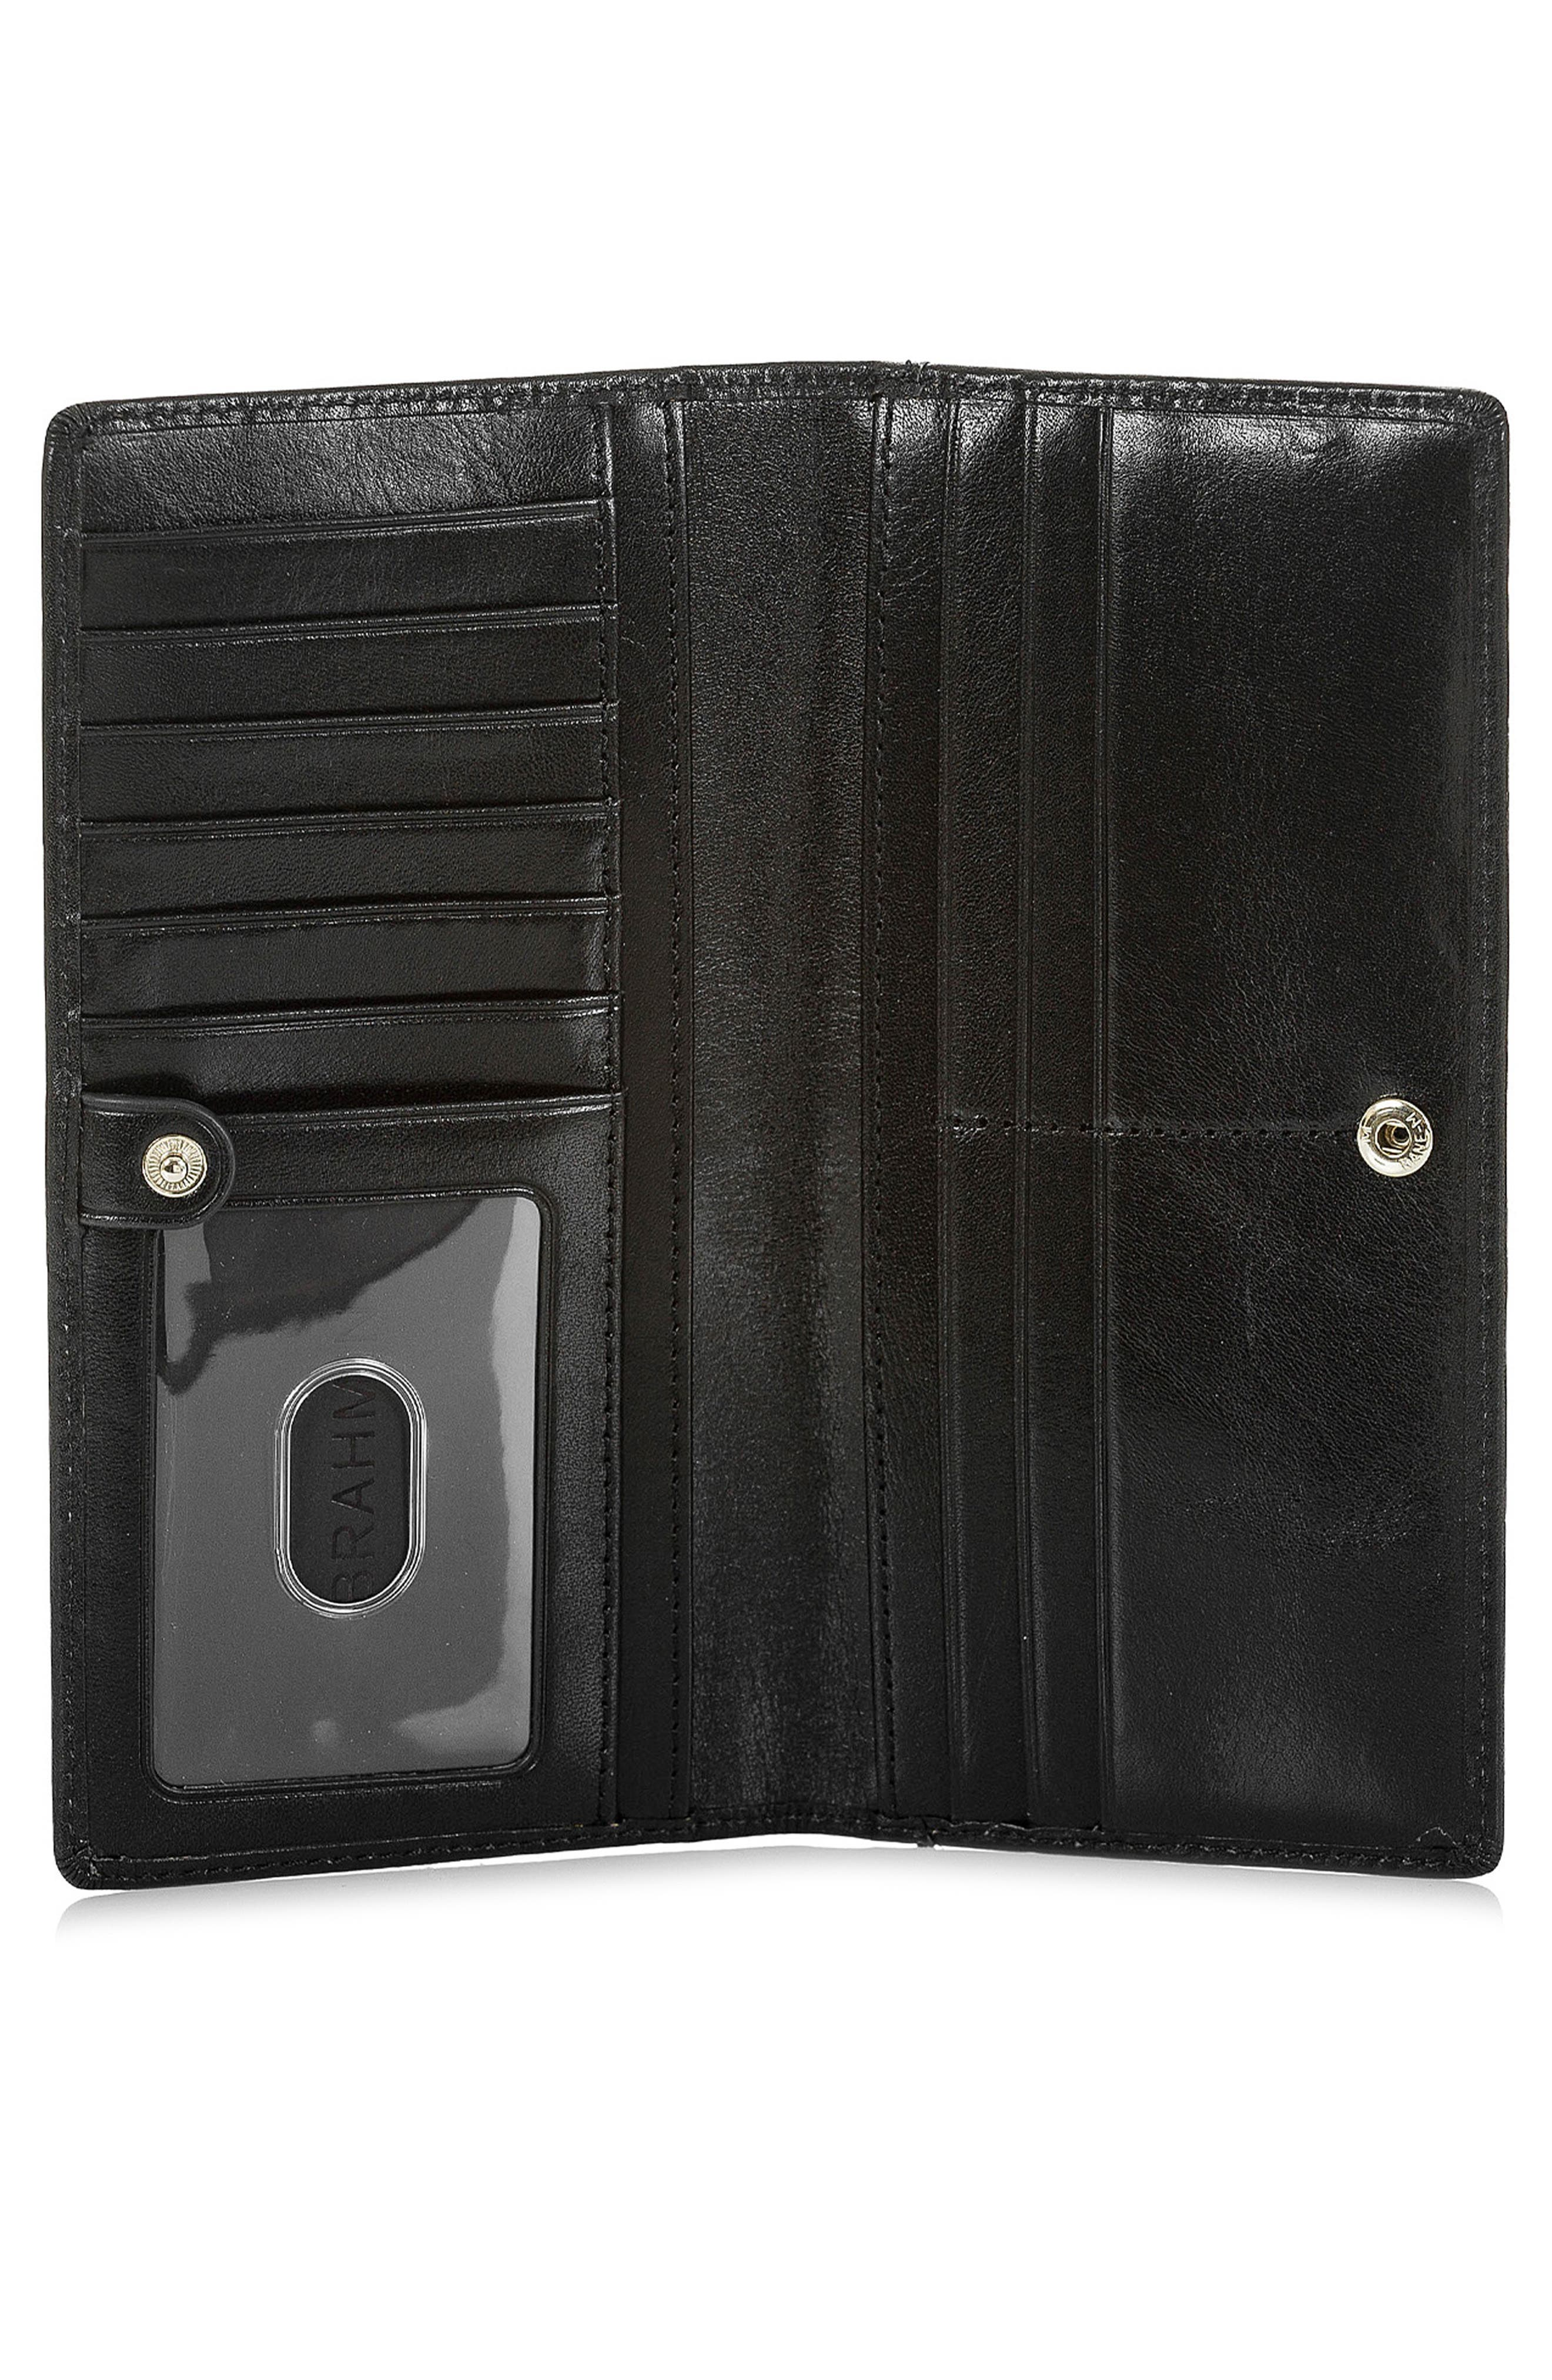 Ady Leather Wallet,                             Alternate thumbnail 2, color,                             BLACK